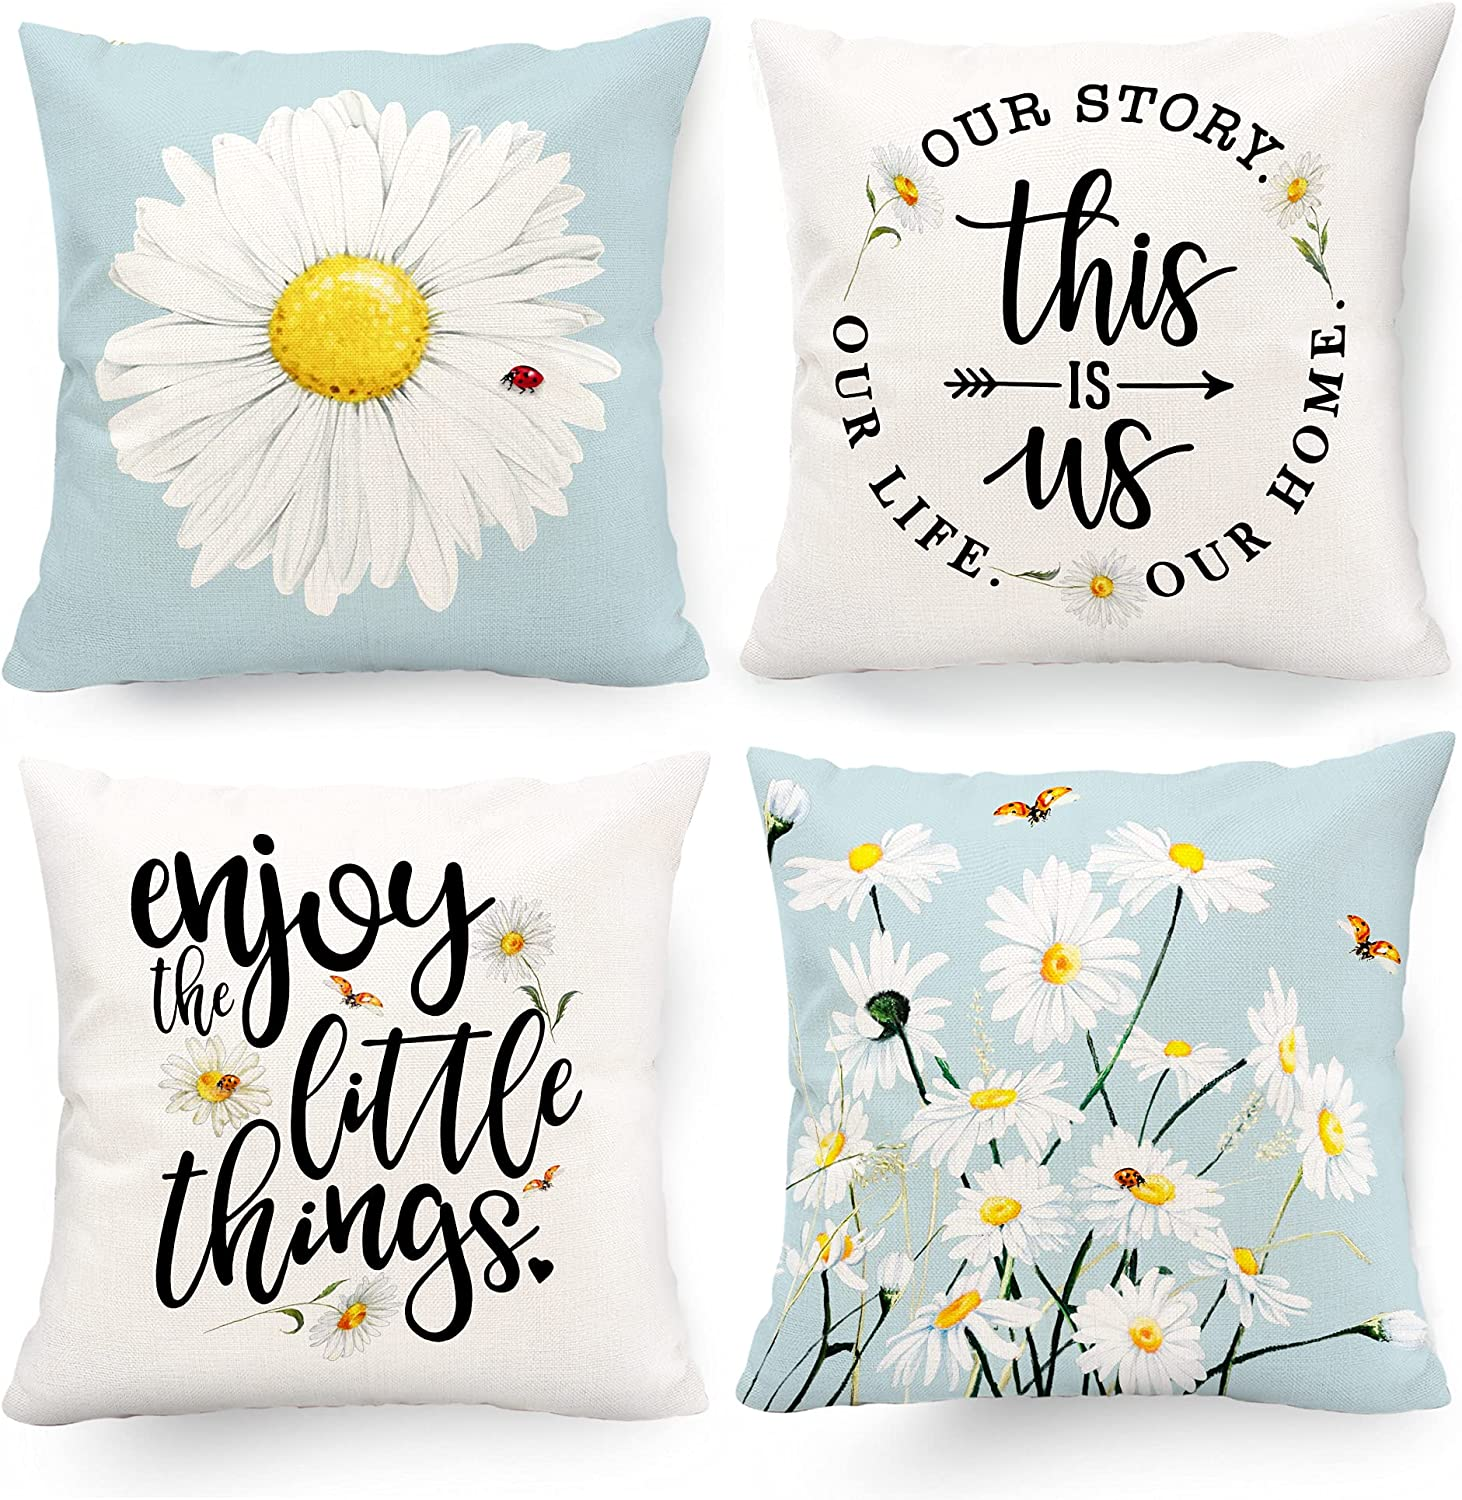 Hexagram Decorative Pillow Covers 18 x 18 Daisy Decor Outdoor Summer Couch Throw Pillow Cover Case Set of 4 Yellow Blue Floral Flower Farmhouse Sunflower Decor for Sofa Living Room Patio Home Decor